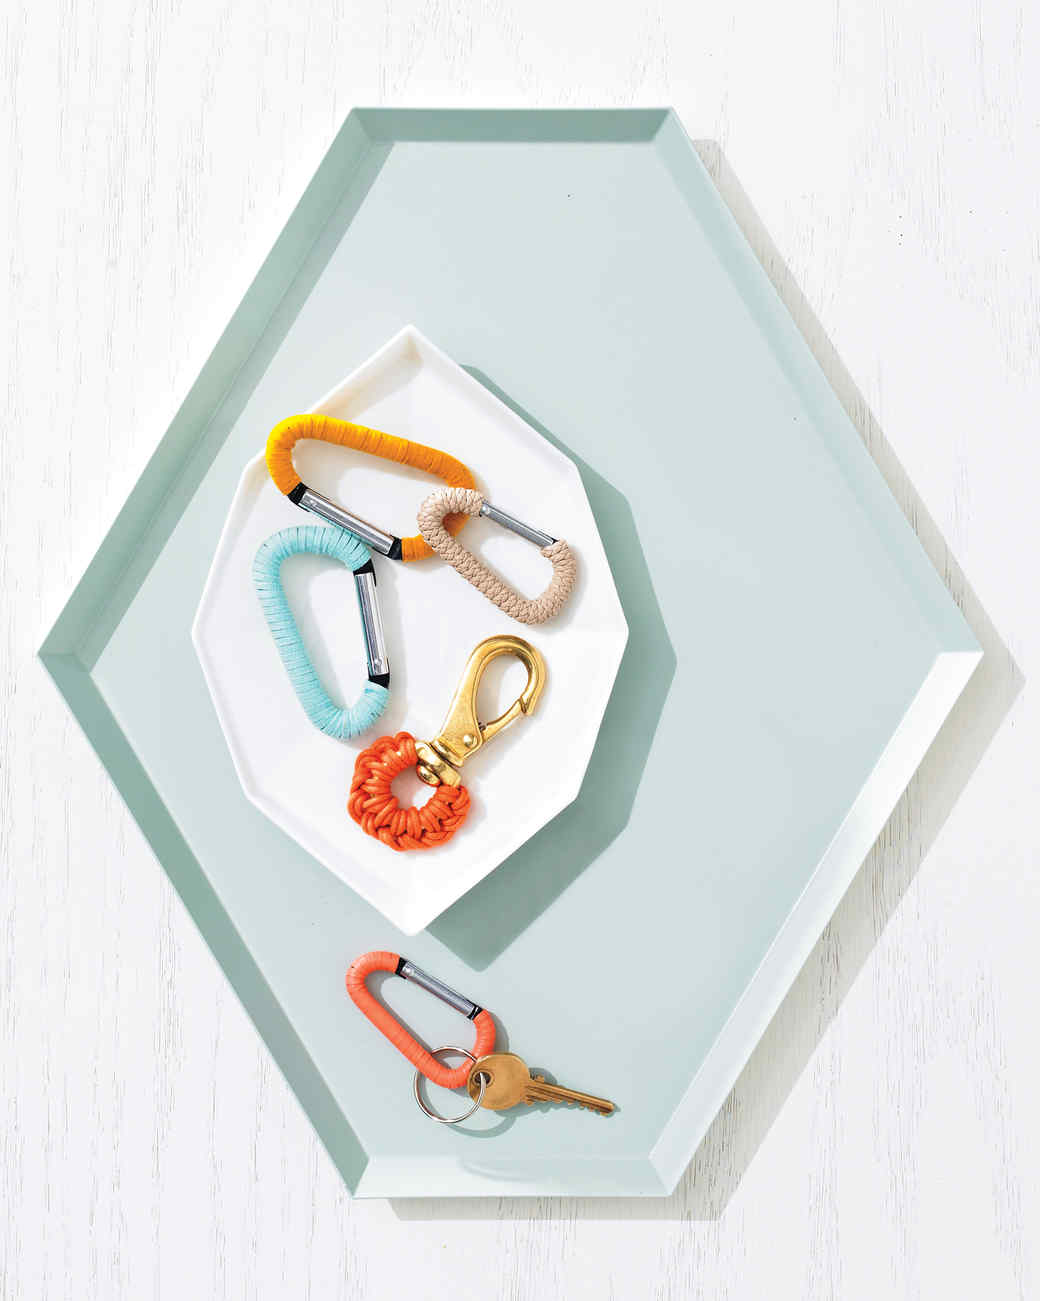 Colorful Cord-Wrapped Keychains